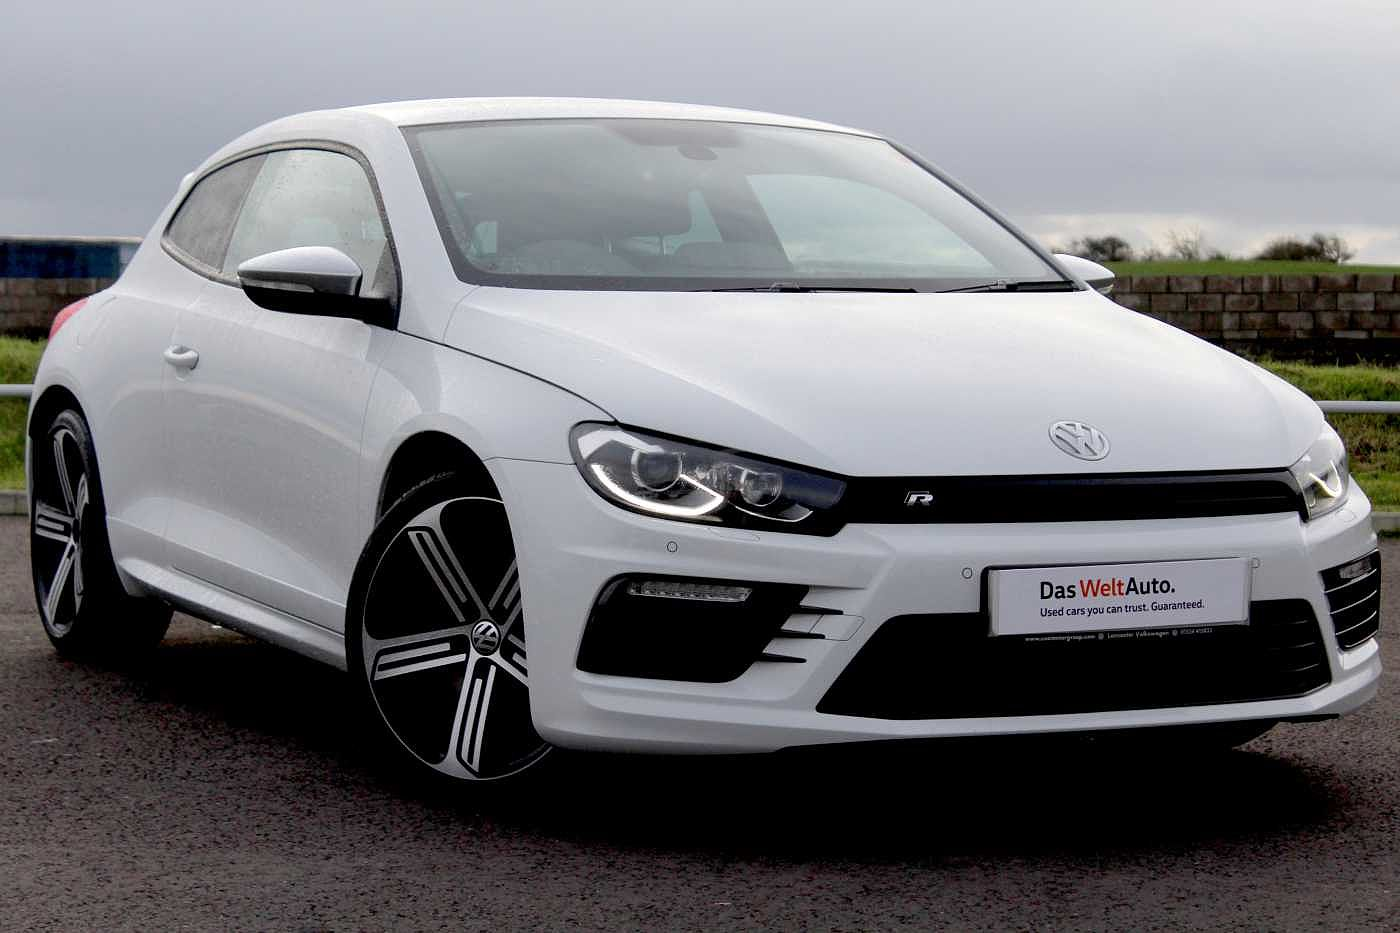 Volkswagen Scirocco 2.0 TSI R (s/s) (280 PS) 3-Dr Coupe